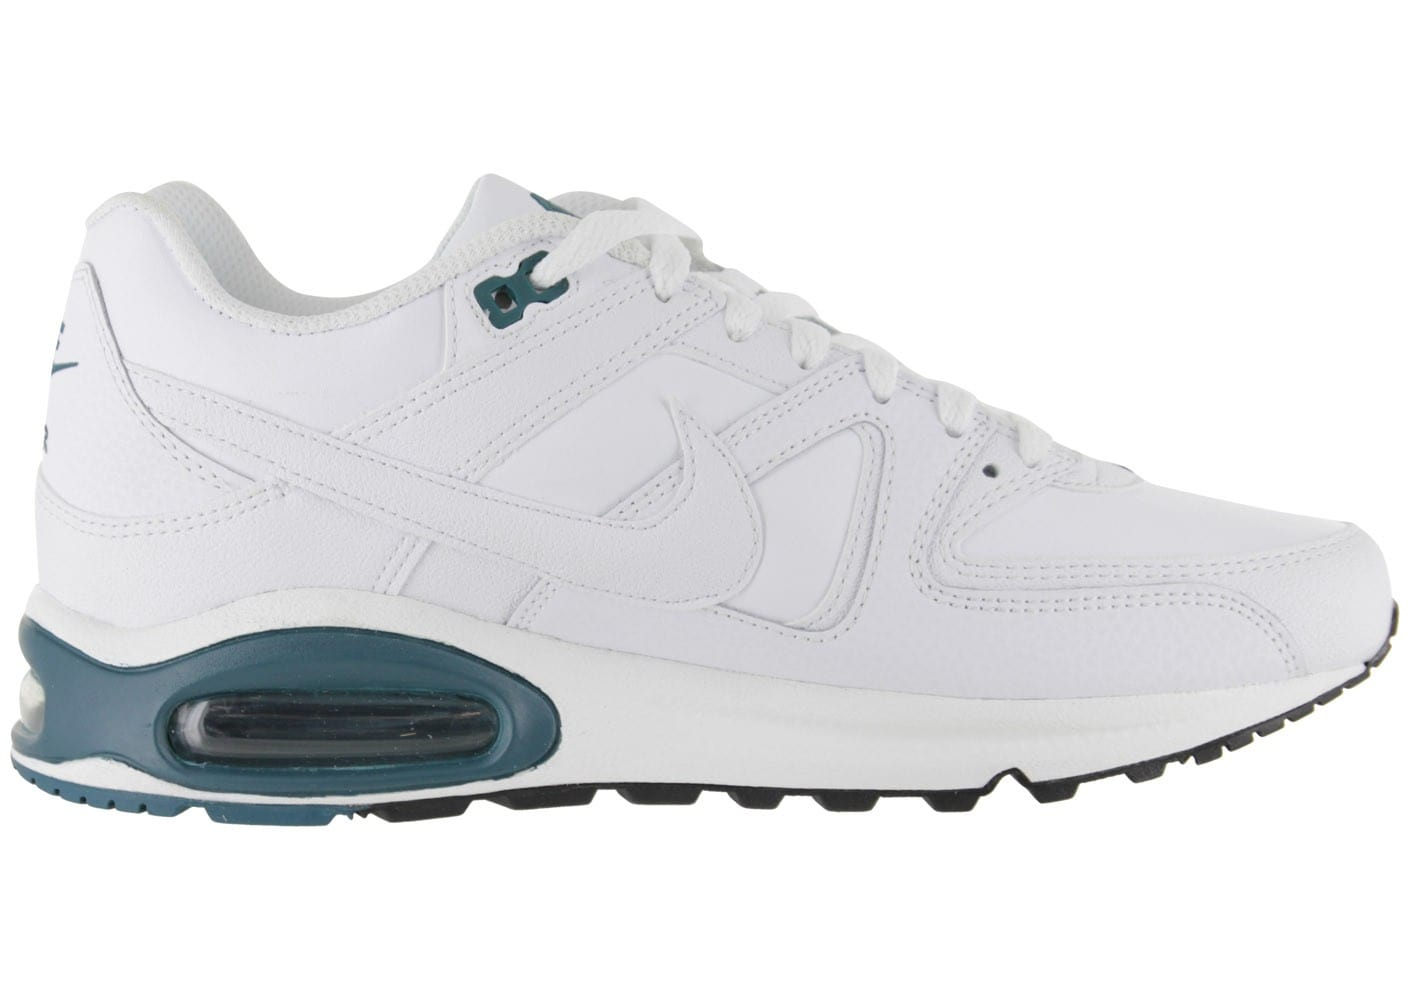 buy online 1e3ec b88d8 ... chaussures nike air max command blanche vue interieure